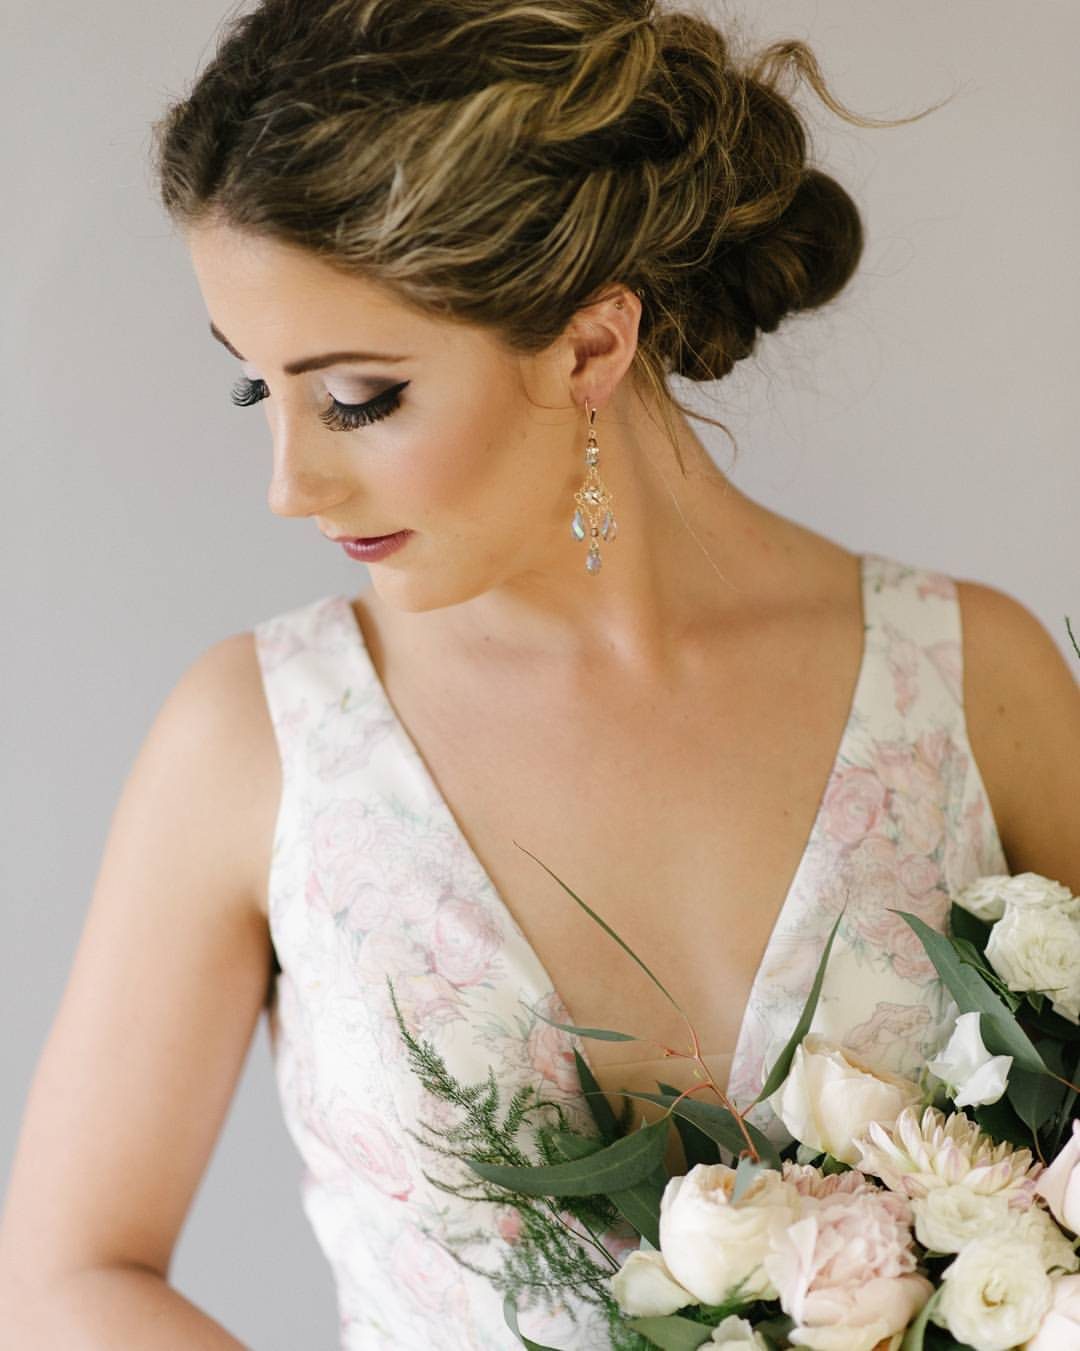 Bridal Hair and Makeup by Monika photo Gingersnap photography